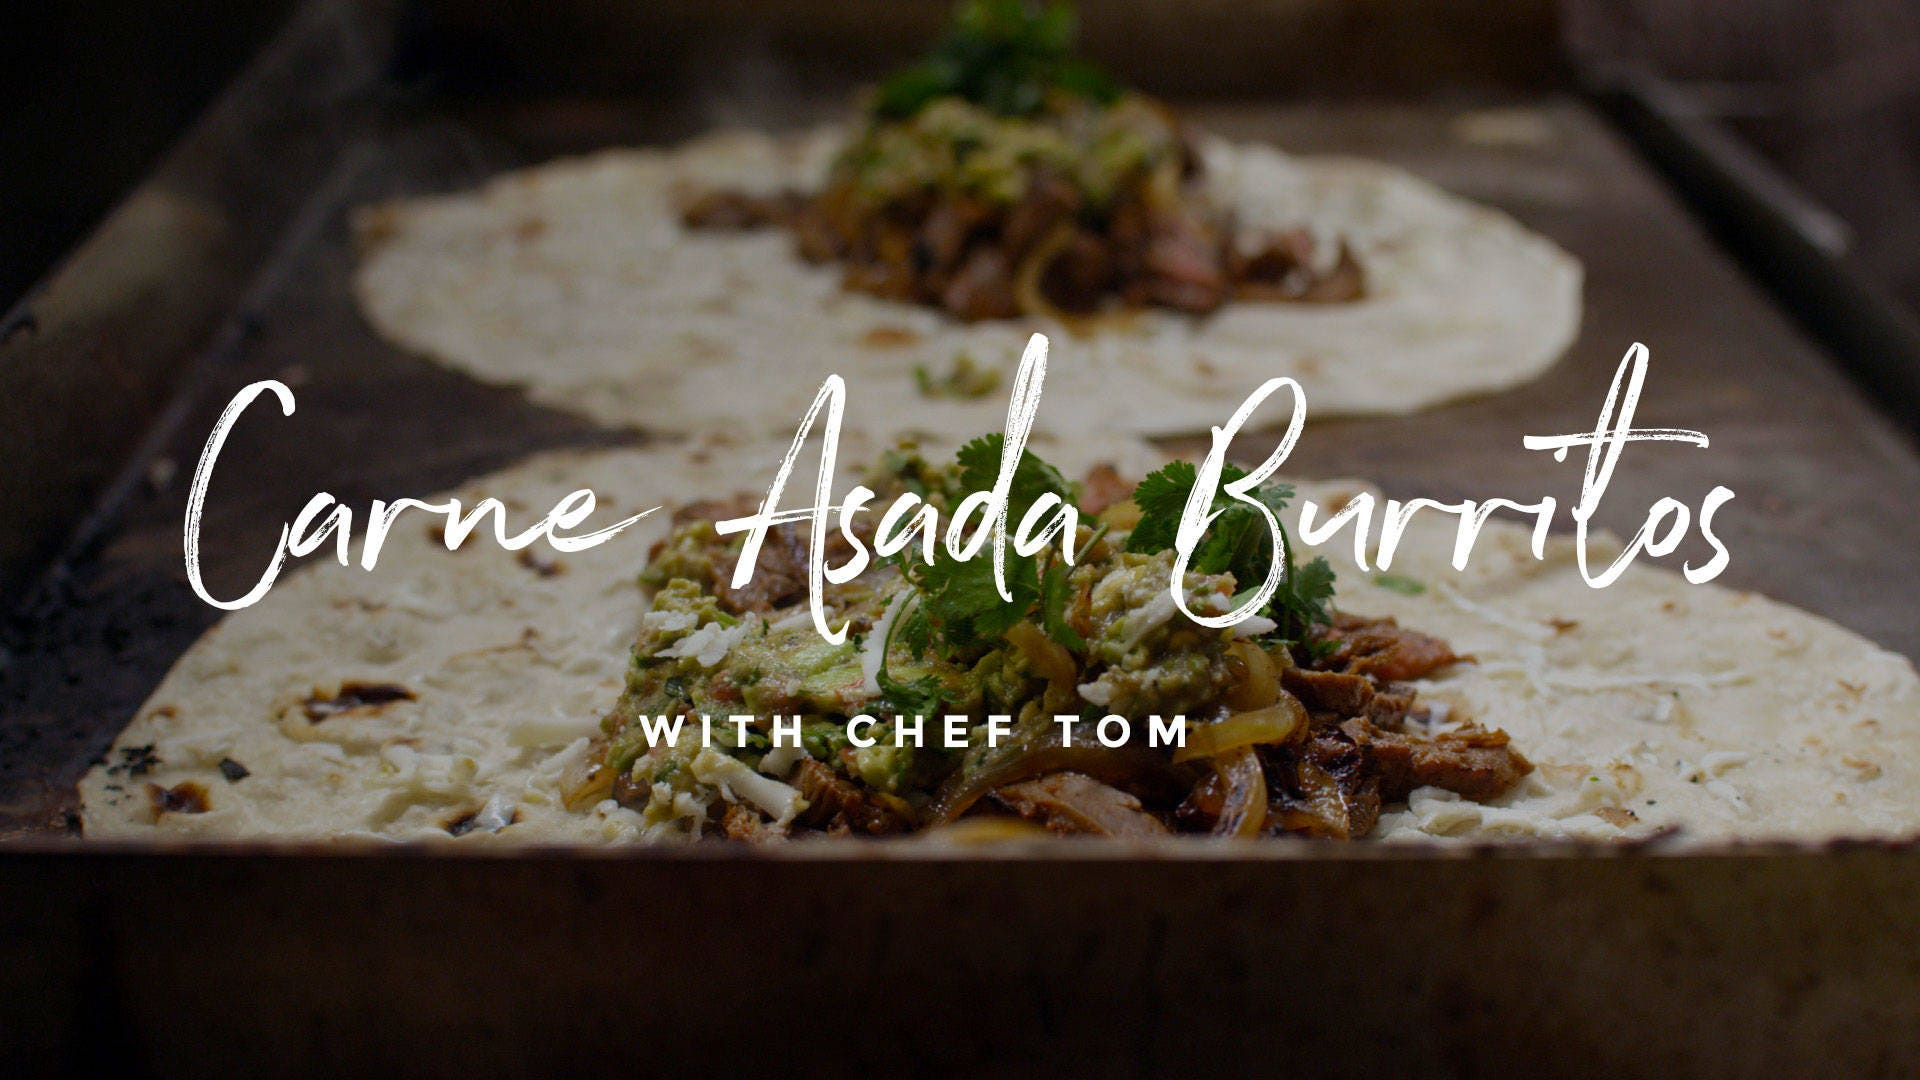 How to make Carne Asada Burritos